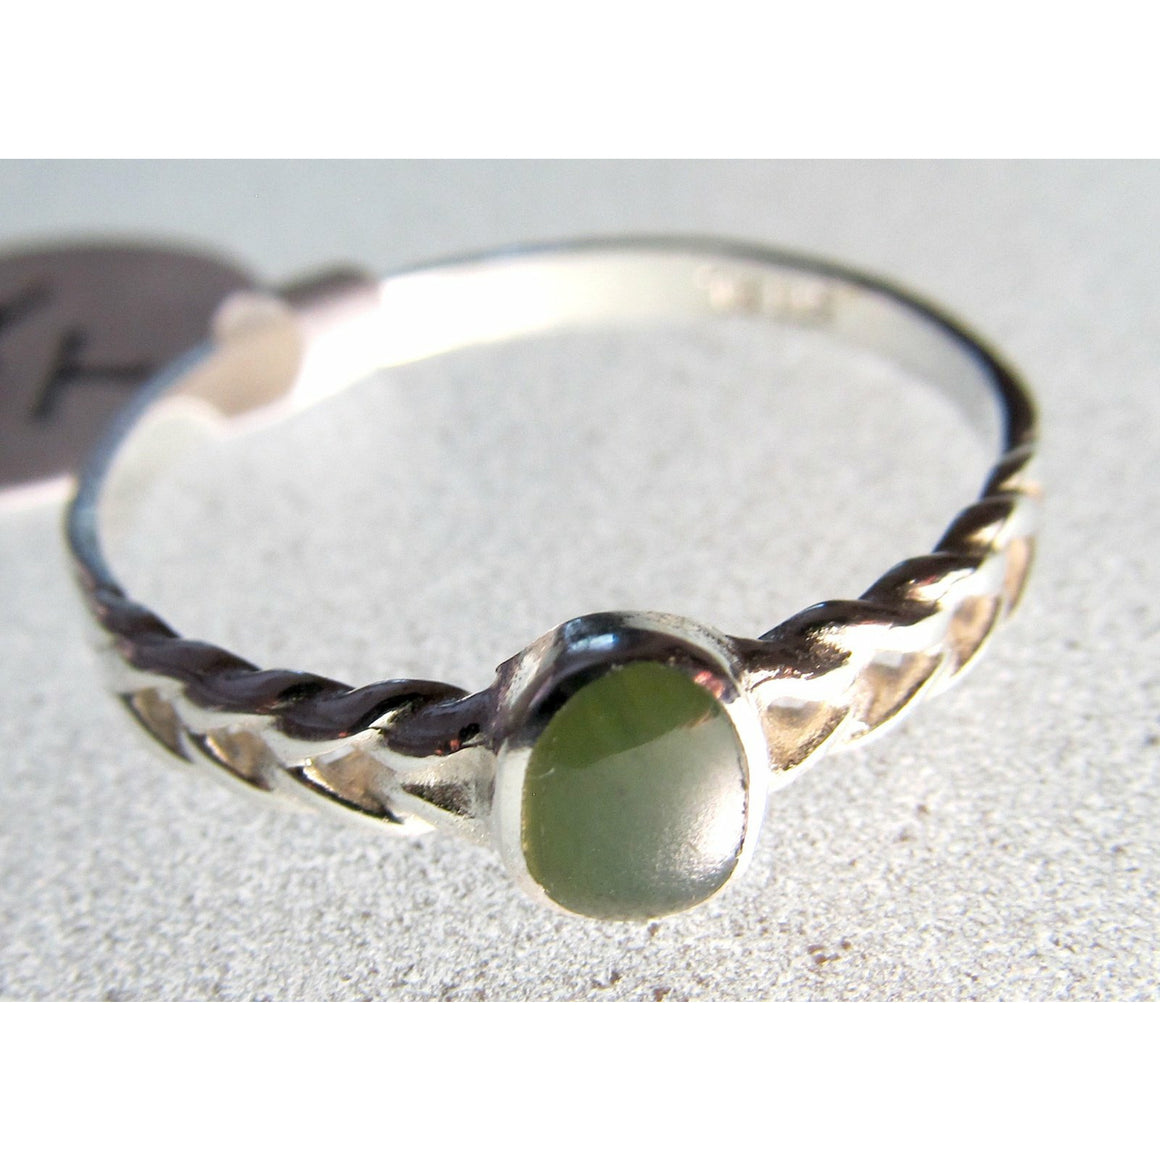 Small oval greenstone inset into patterned sterling silver band